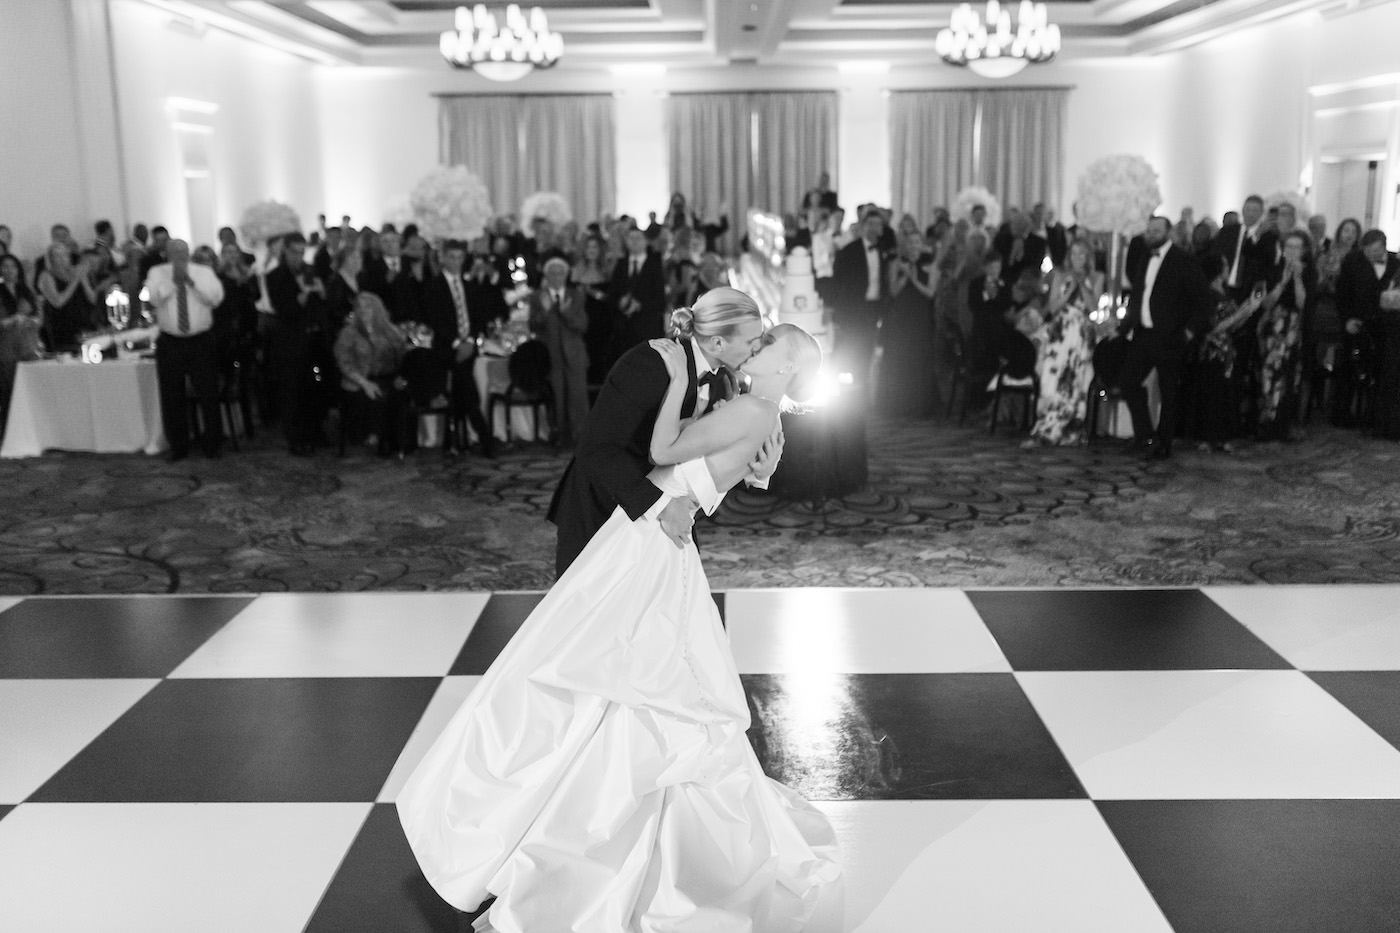 Classic Timeless Bride and Groom Black and White First Dance Dip Wedding Portrait on Black and White Checkered Dance Floor | Clearwater Beach Hotel Wedding Venue Sandpearl Resort